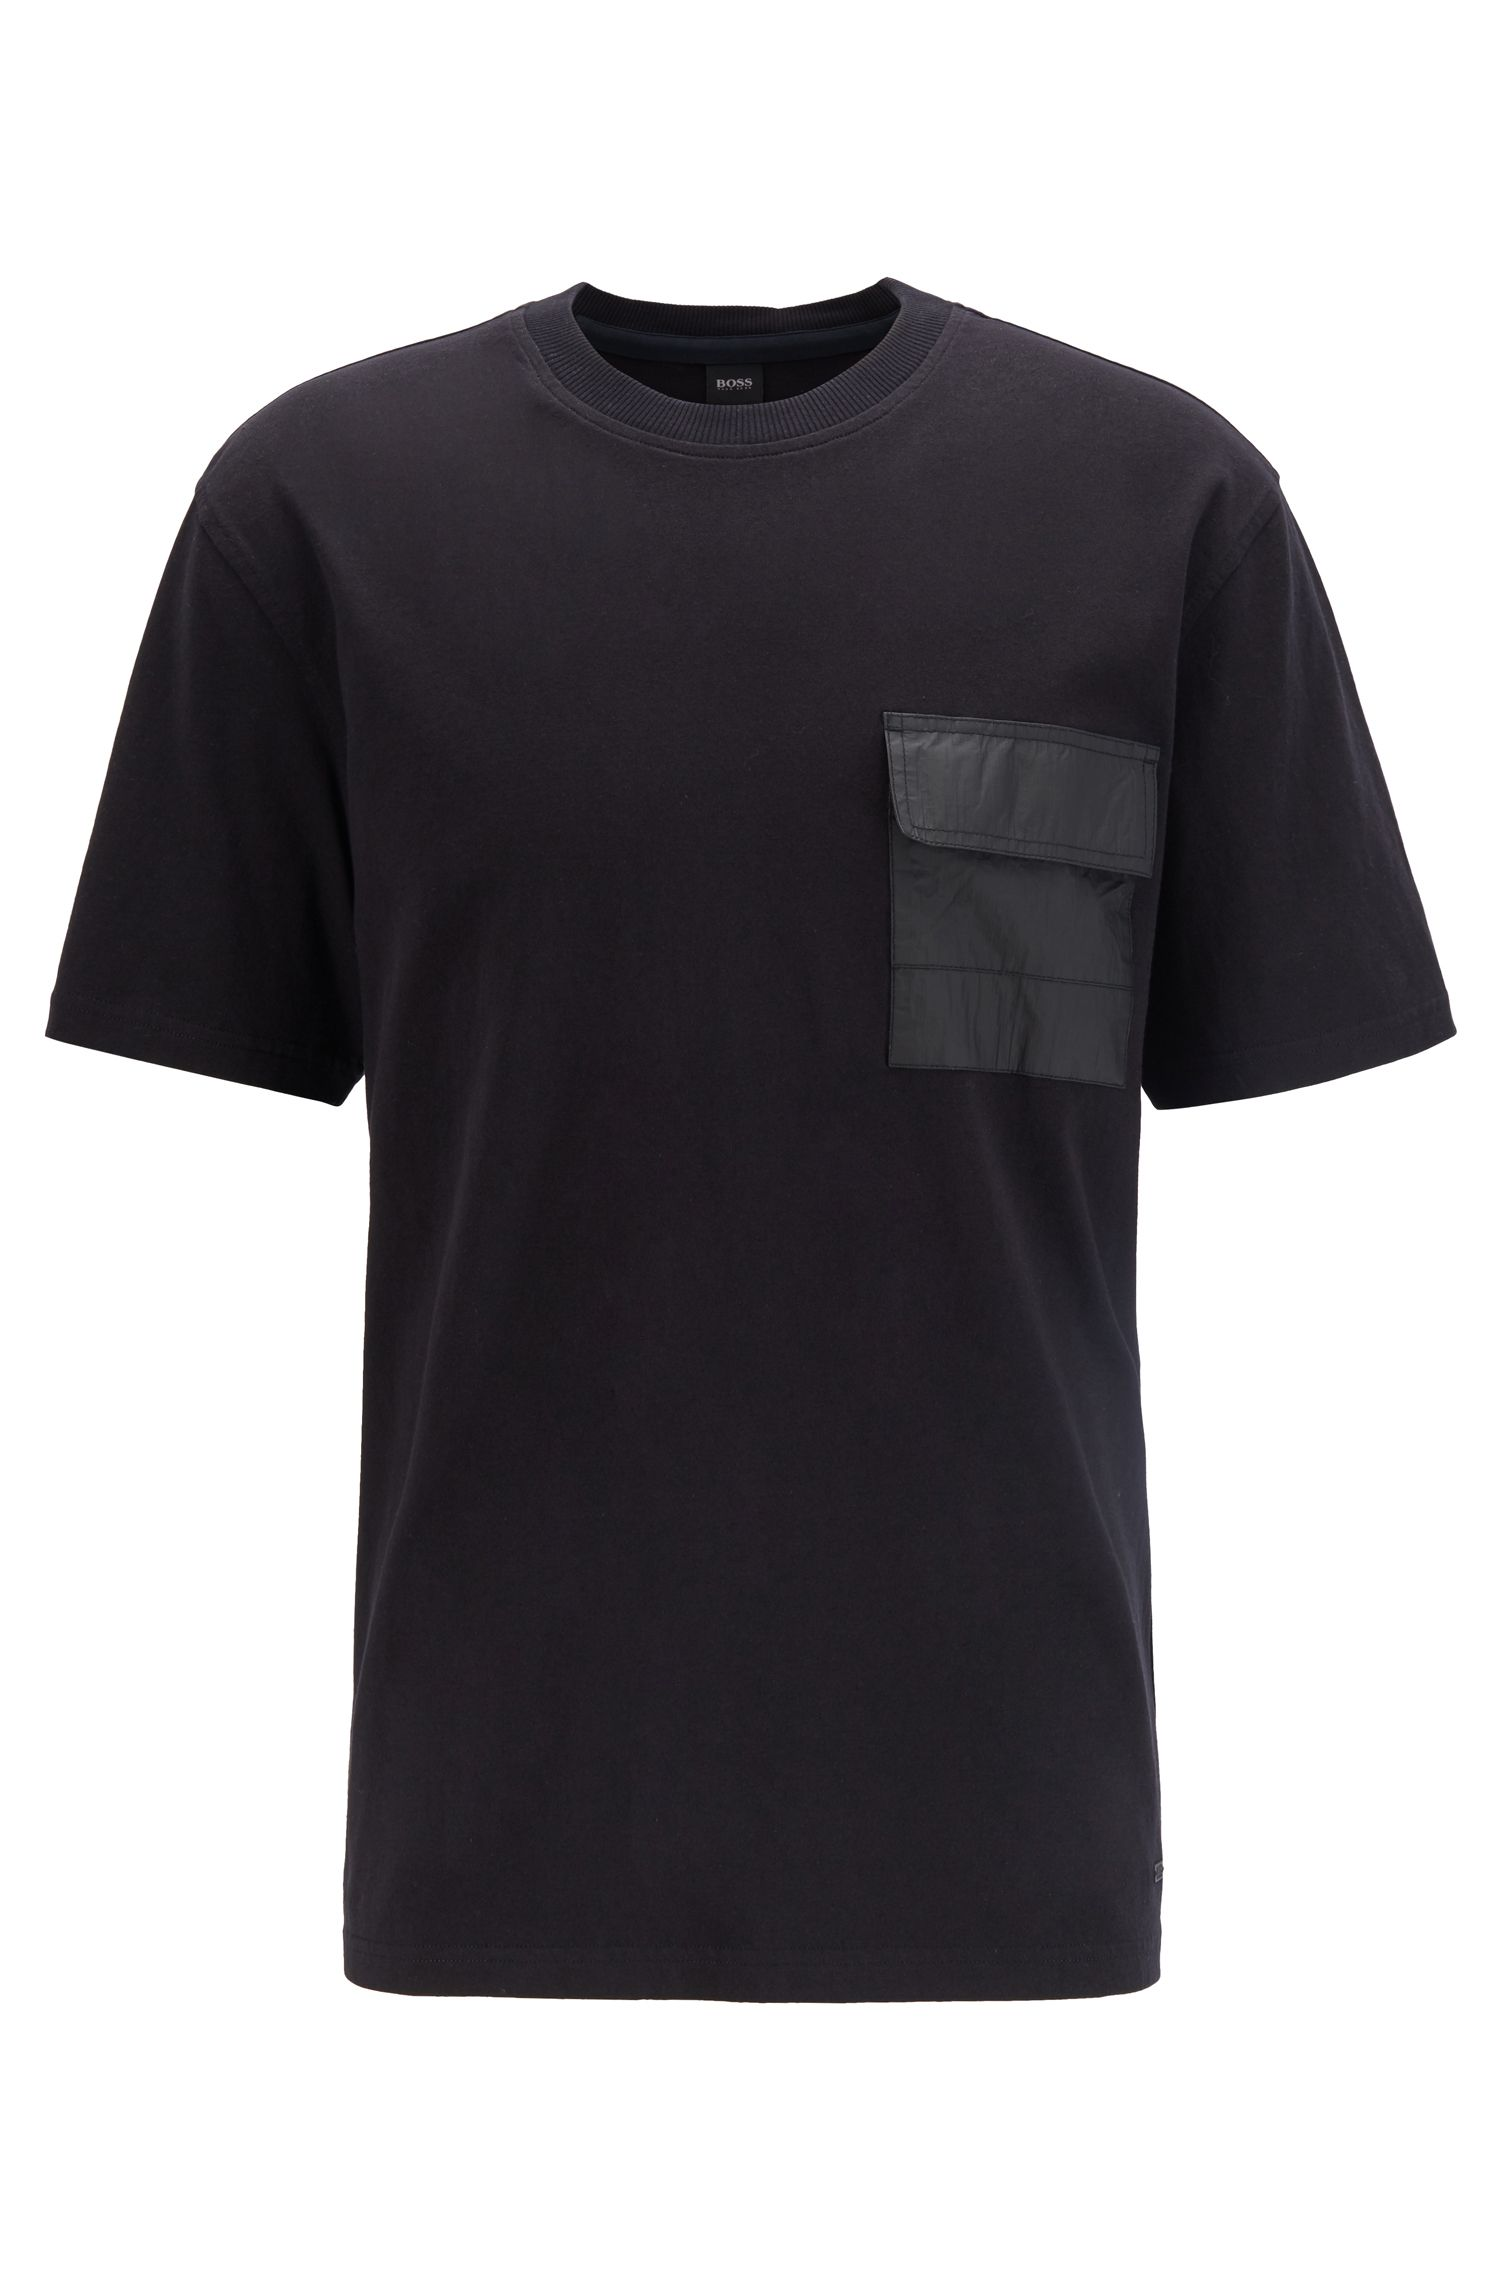 T-shirt relaxed fit in jersey di cotone con tasca Tyvek®, Nero